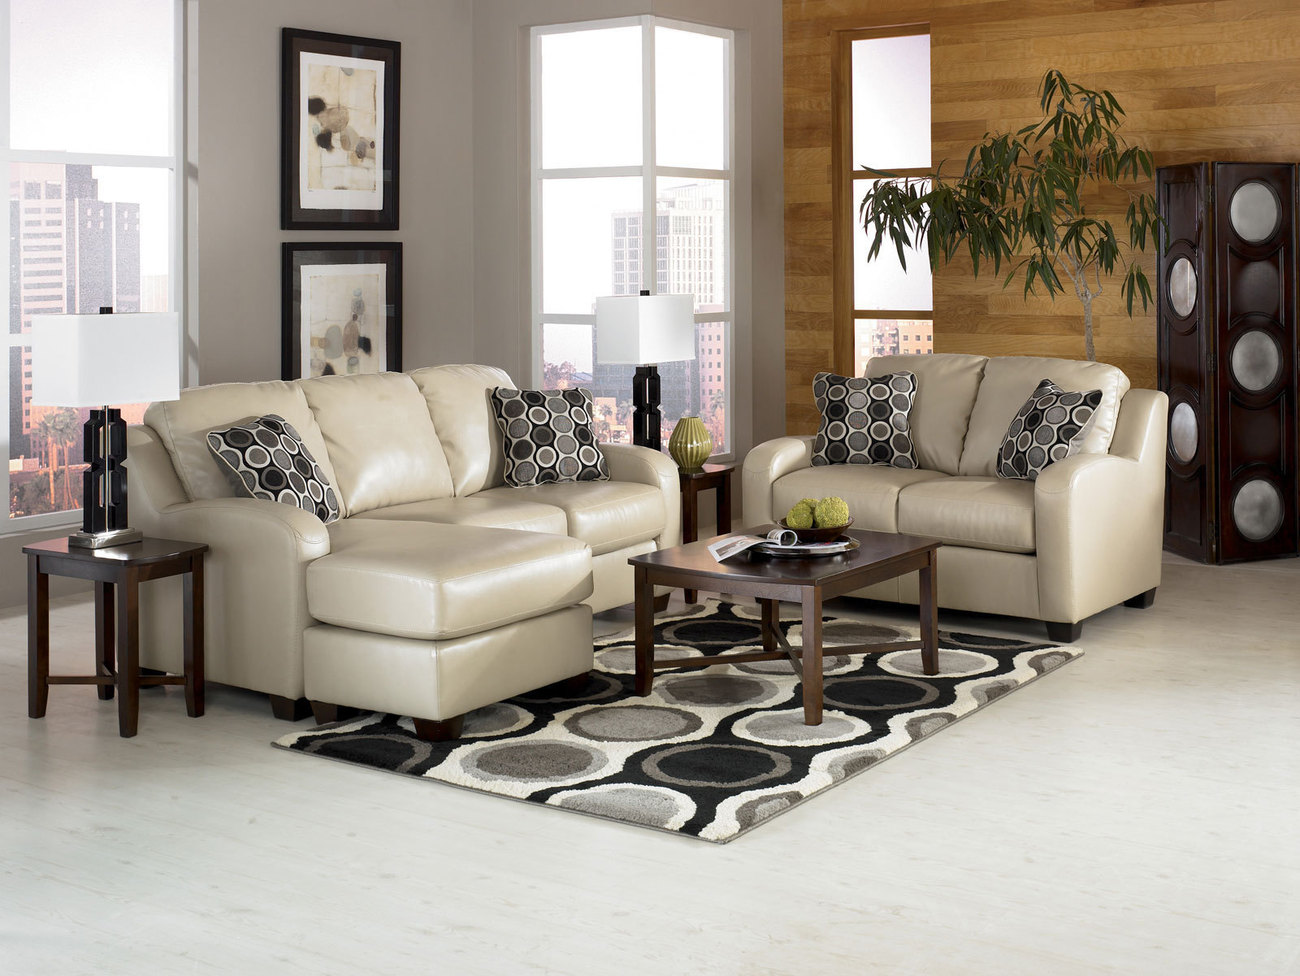 Nice leather sleeper sofa ideas with various designs - Living room design with leather sofa ...